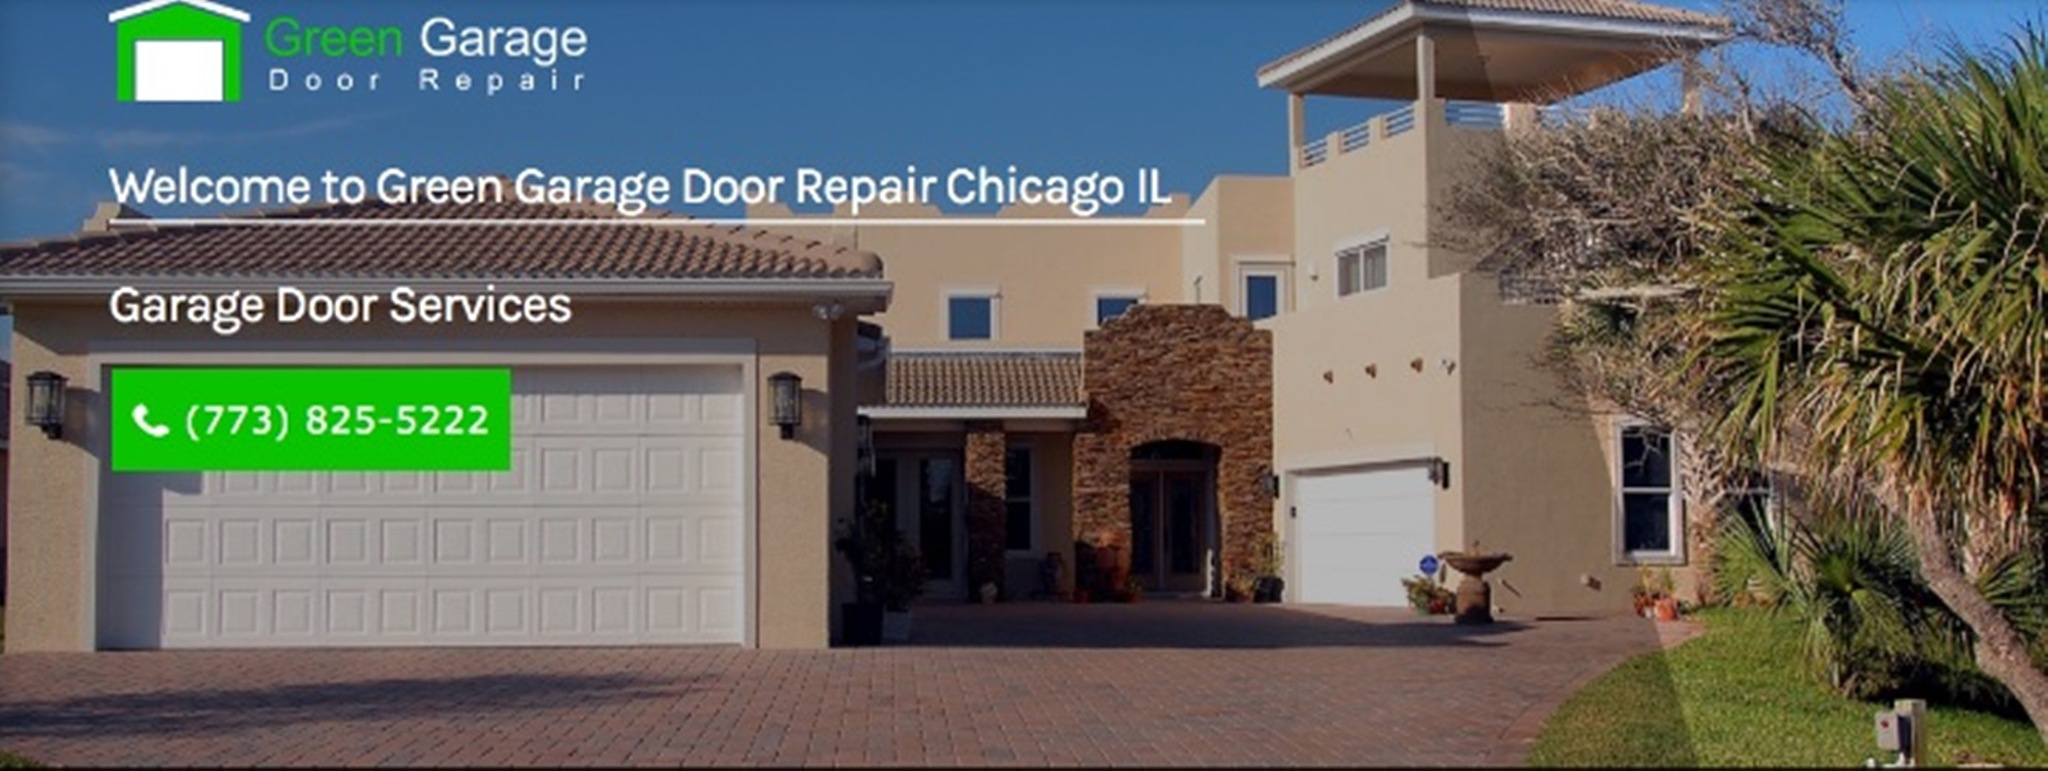 Garage Door Supplier Chicago IL by Green Garage Door Repair